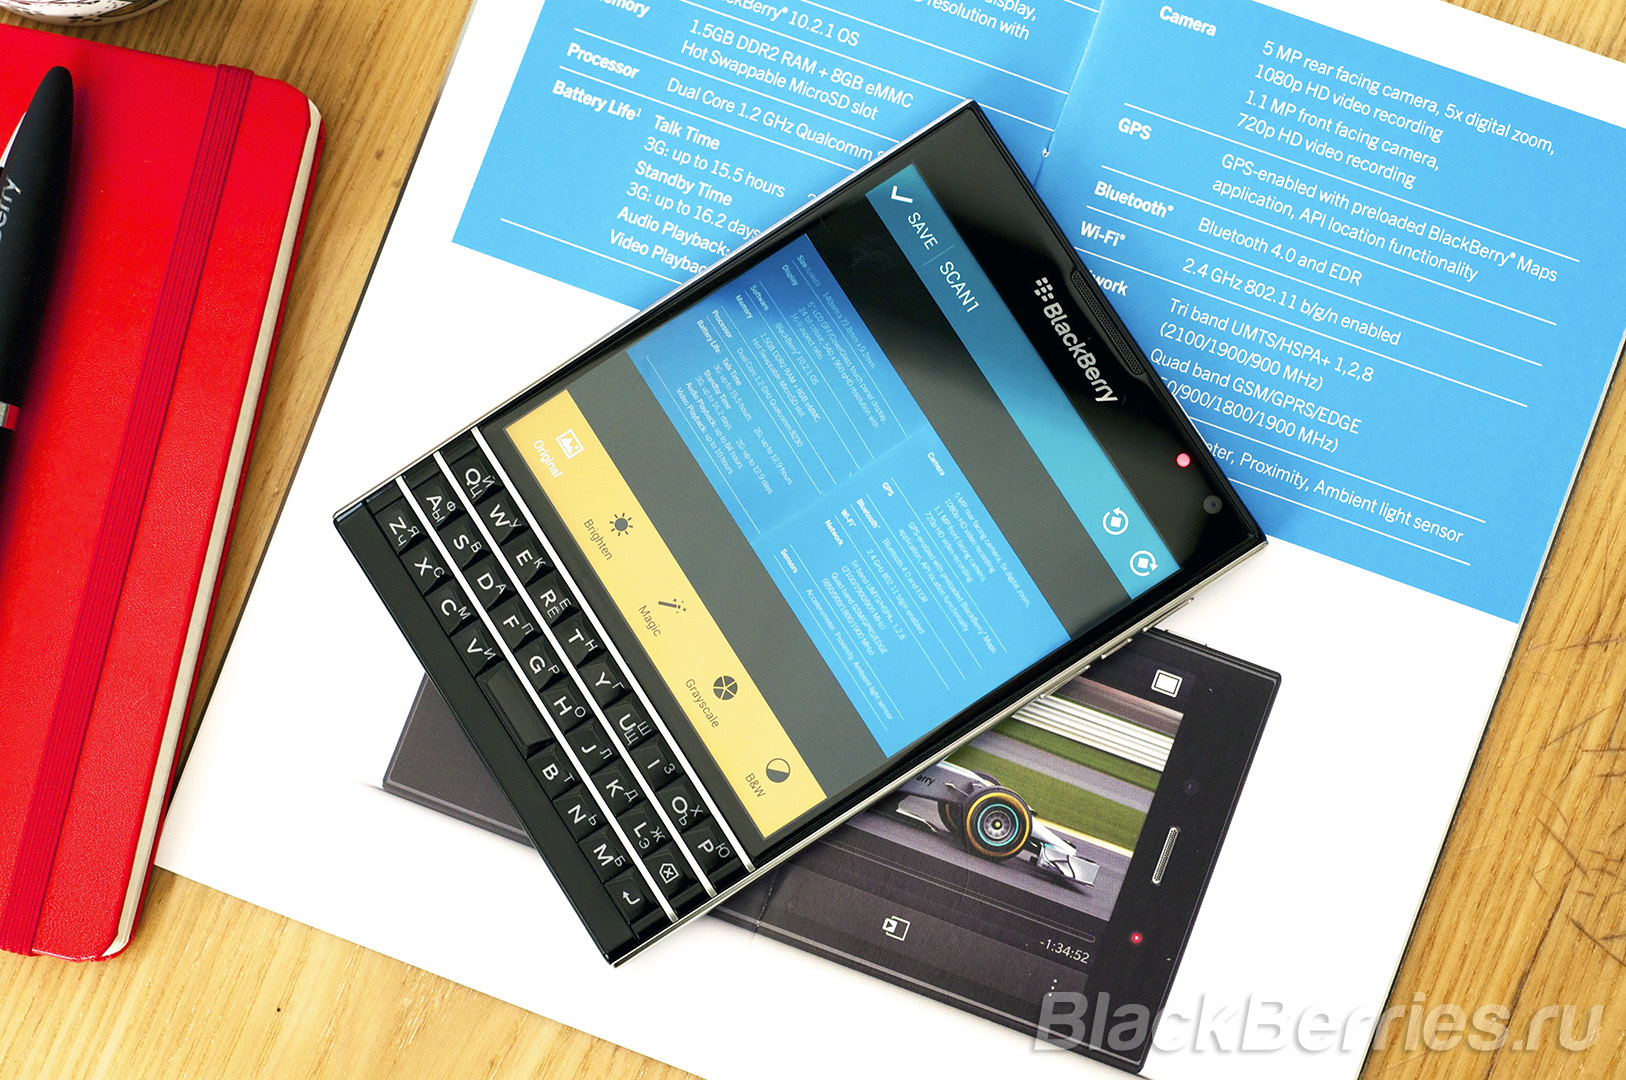 BlackBerry-Passport-App-Review-2-13